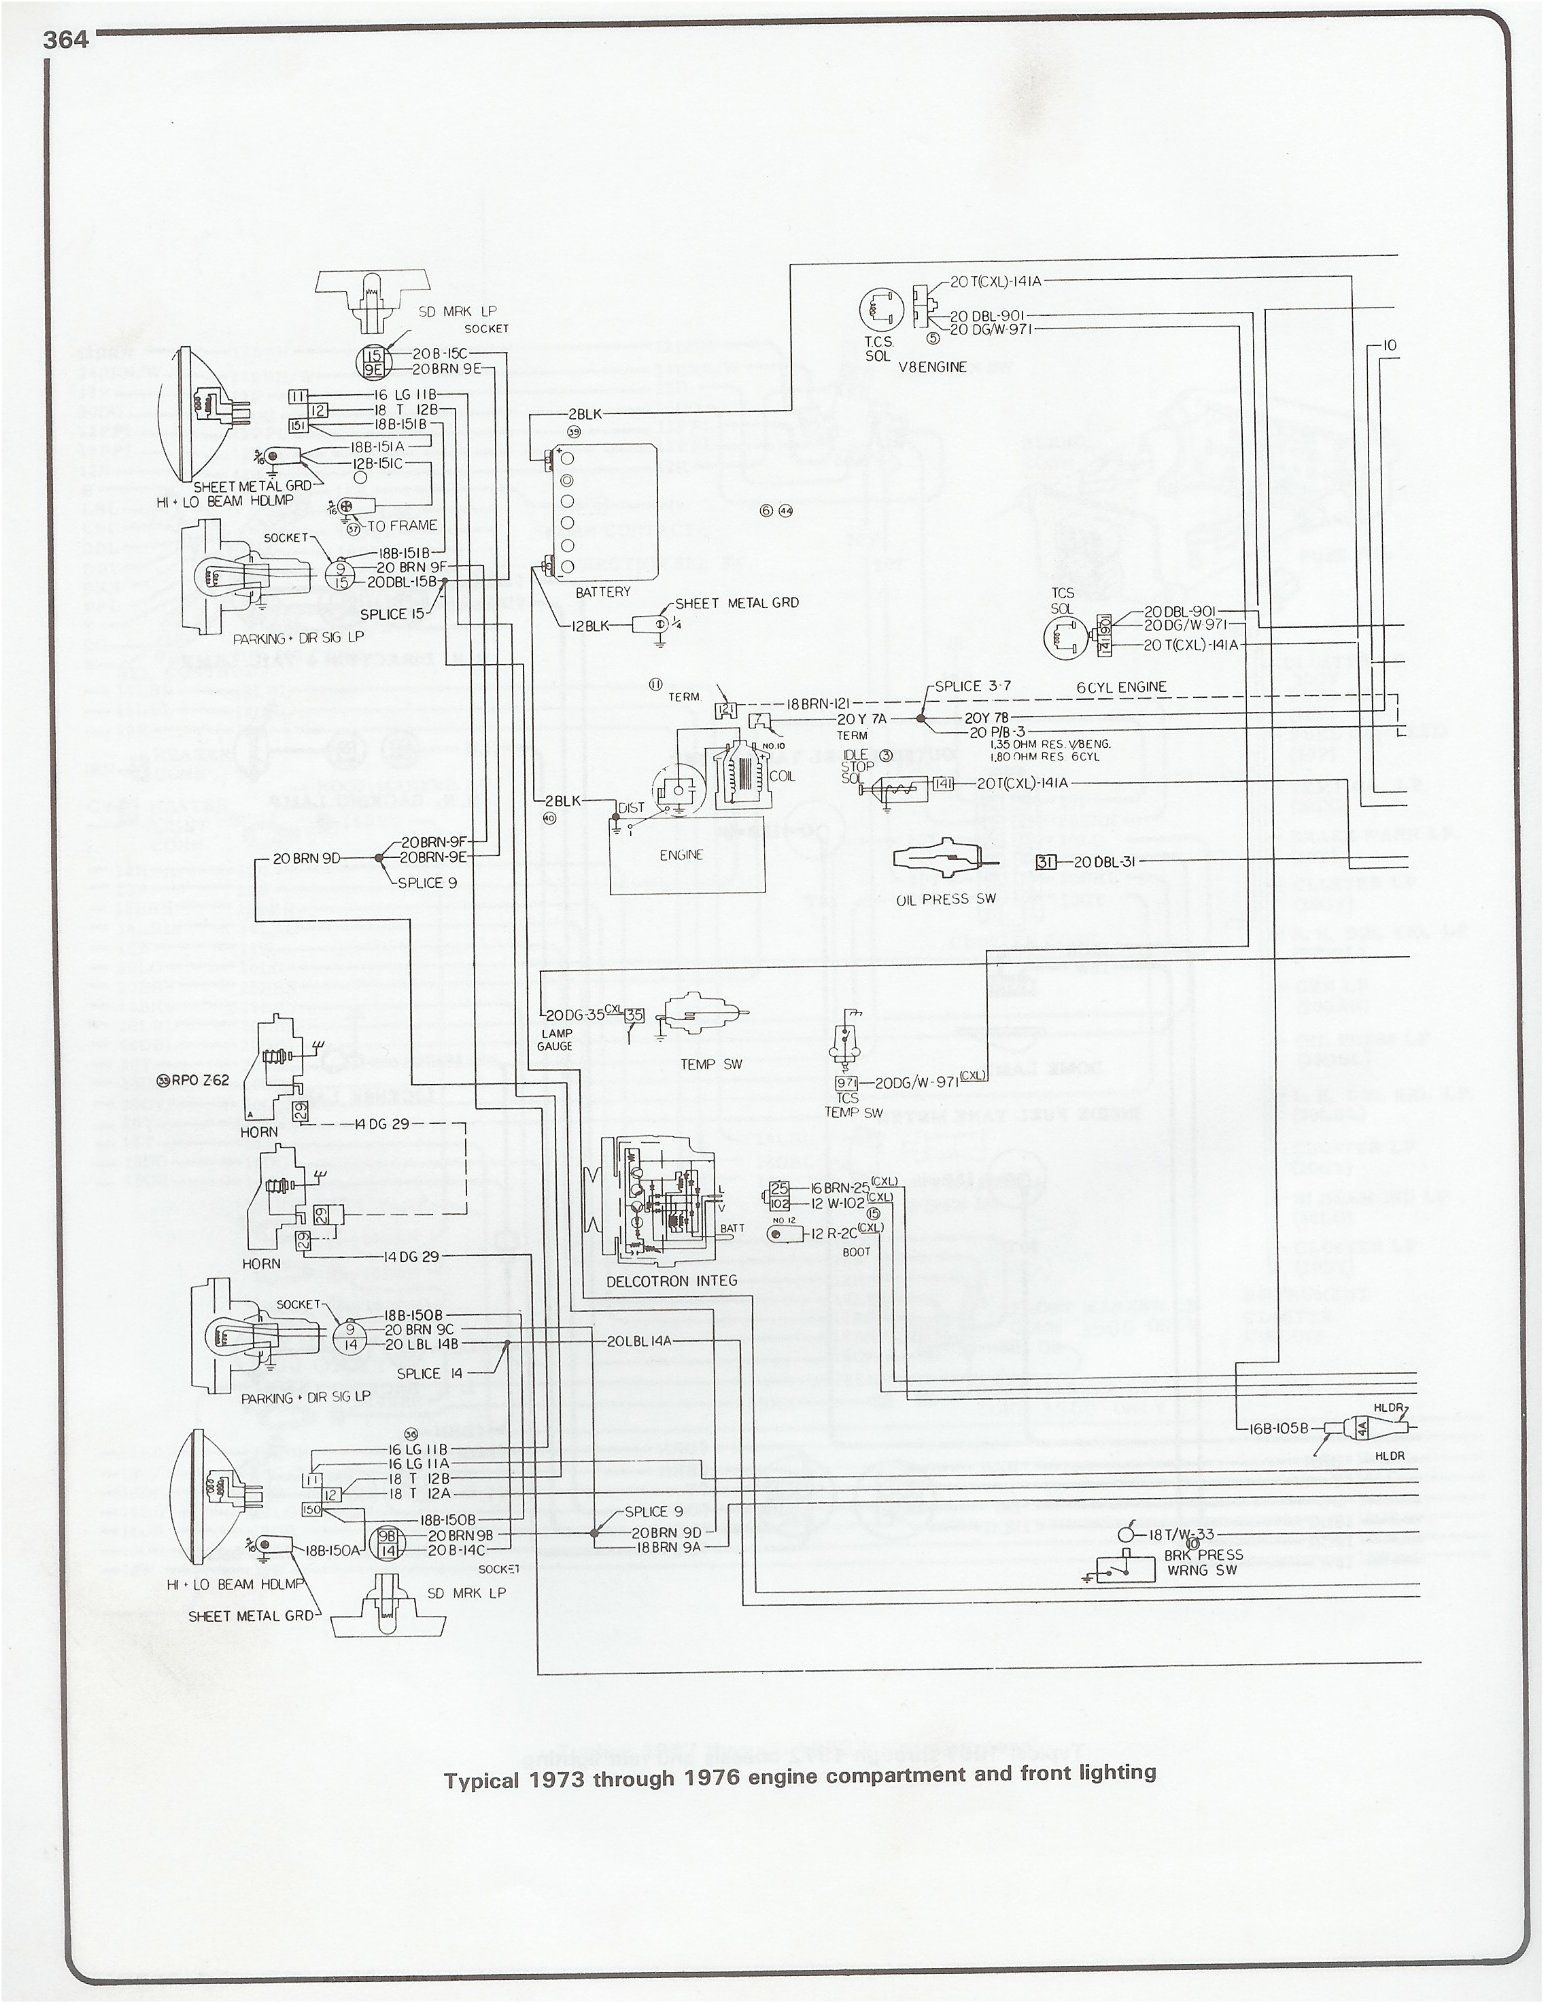 Wiring Diagram 1973 - 1976 Chevy Pickup #Chevy #Wiring #Diagram